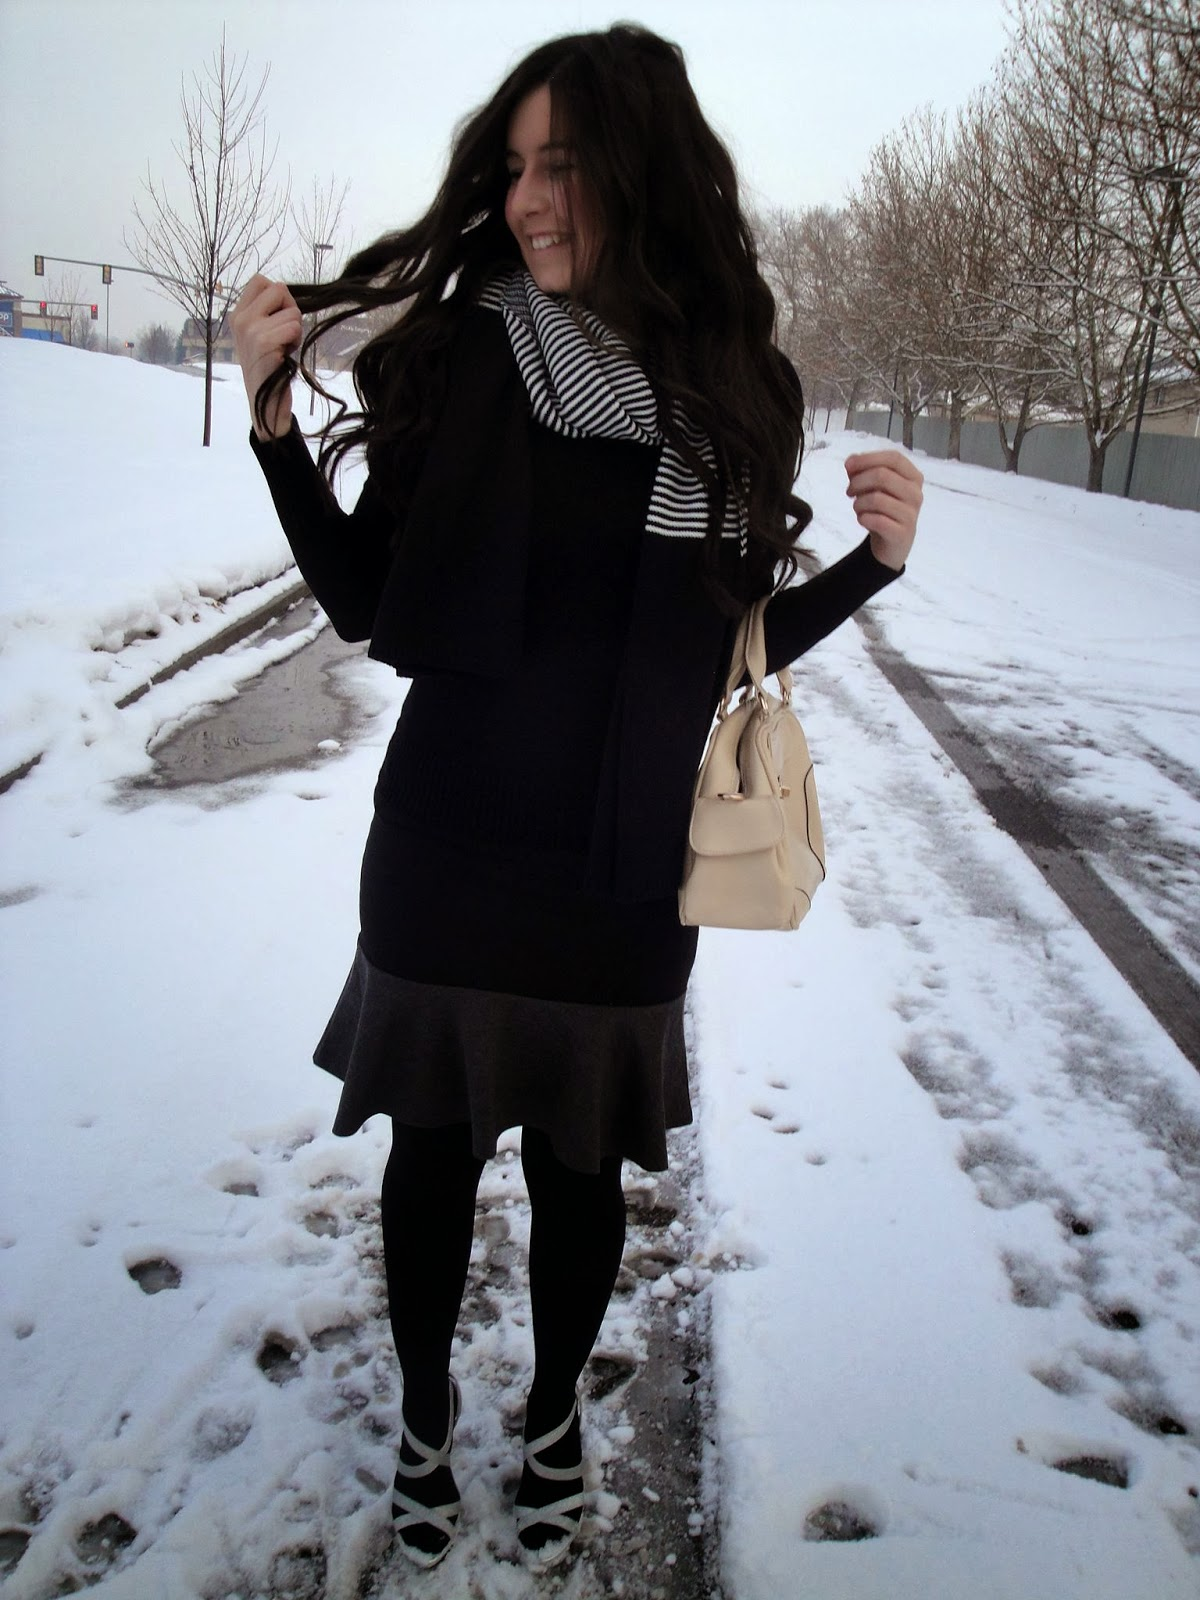 persun mall, scarf, black and white, black and grey skirt, fit and flare skirt, fit and flare, pretty, bellami hair extensions, bellami hair, bellami, black sweater, black and white, payless heels, heels, silver heels, persunmall, tights, long hair, curly hair, purse, purses,